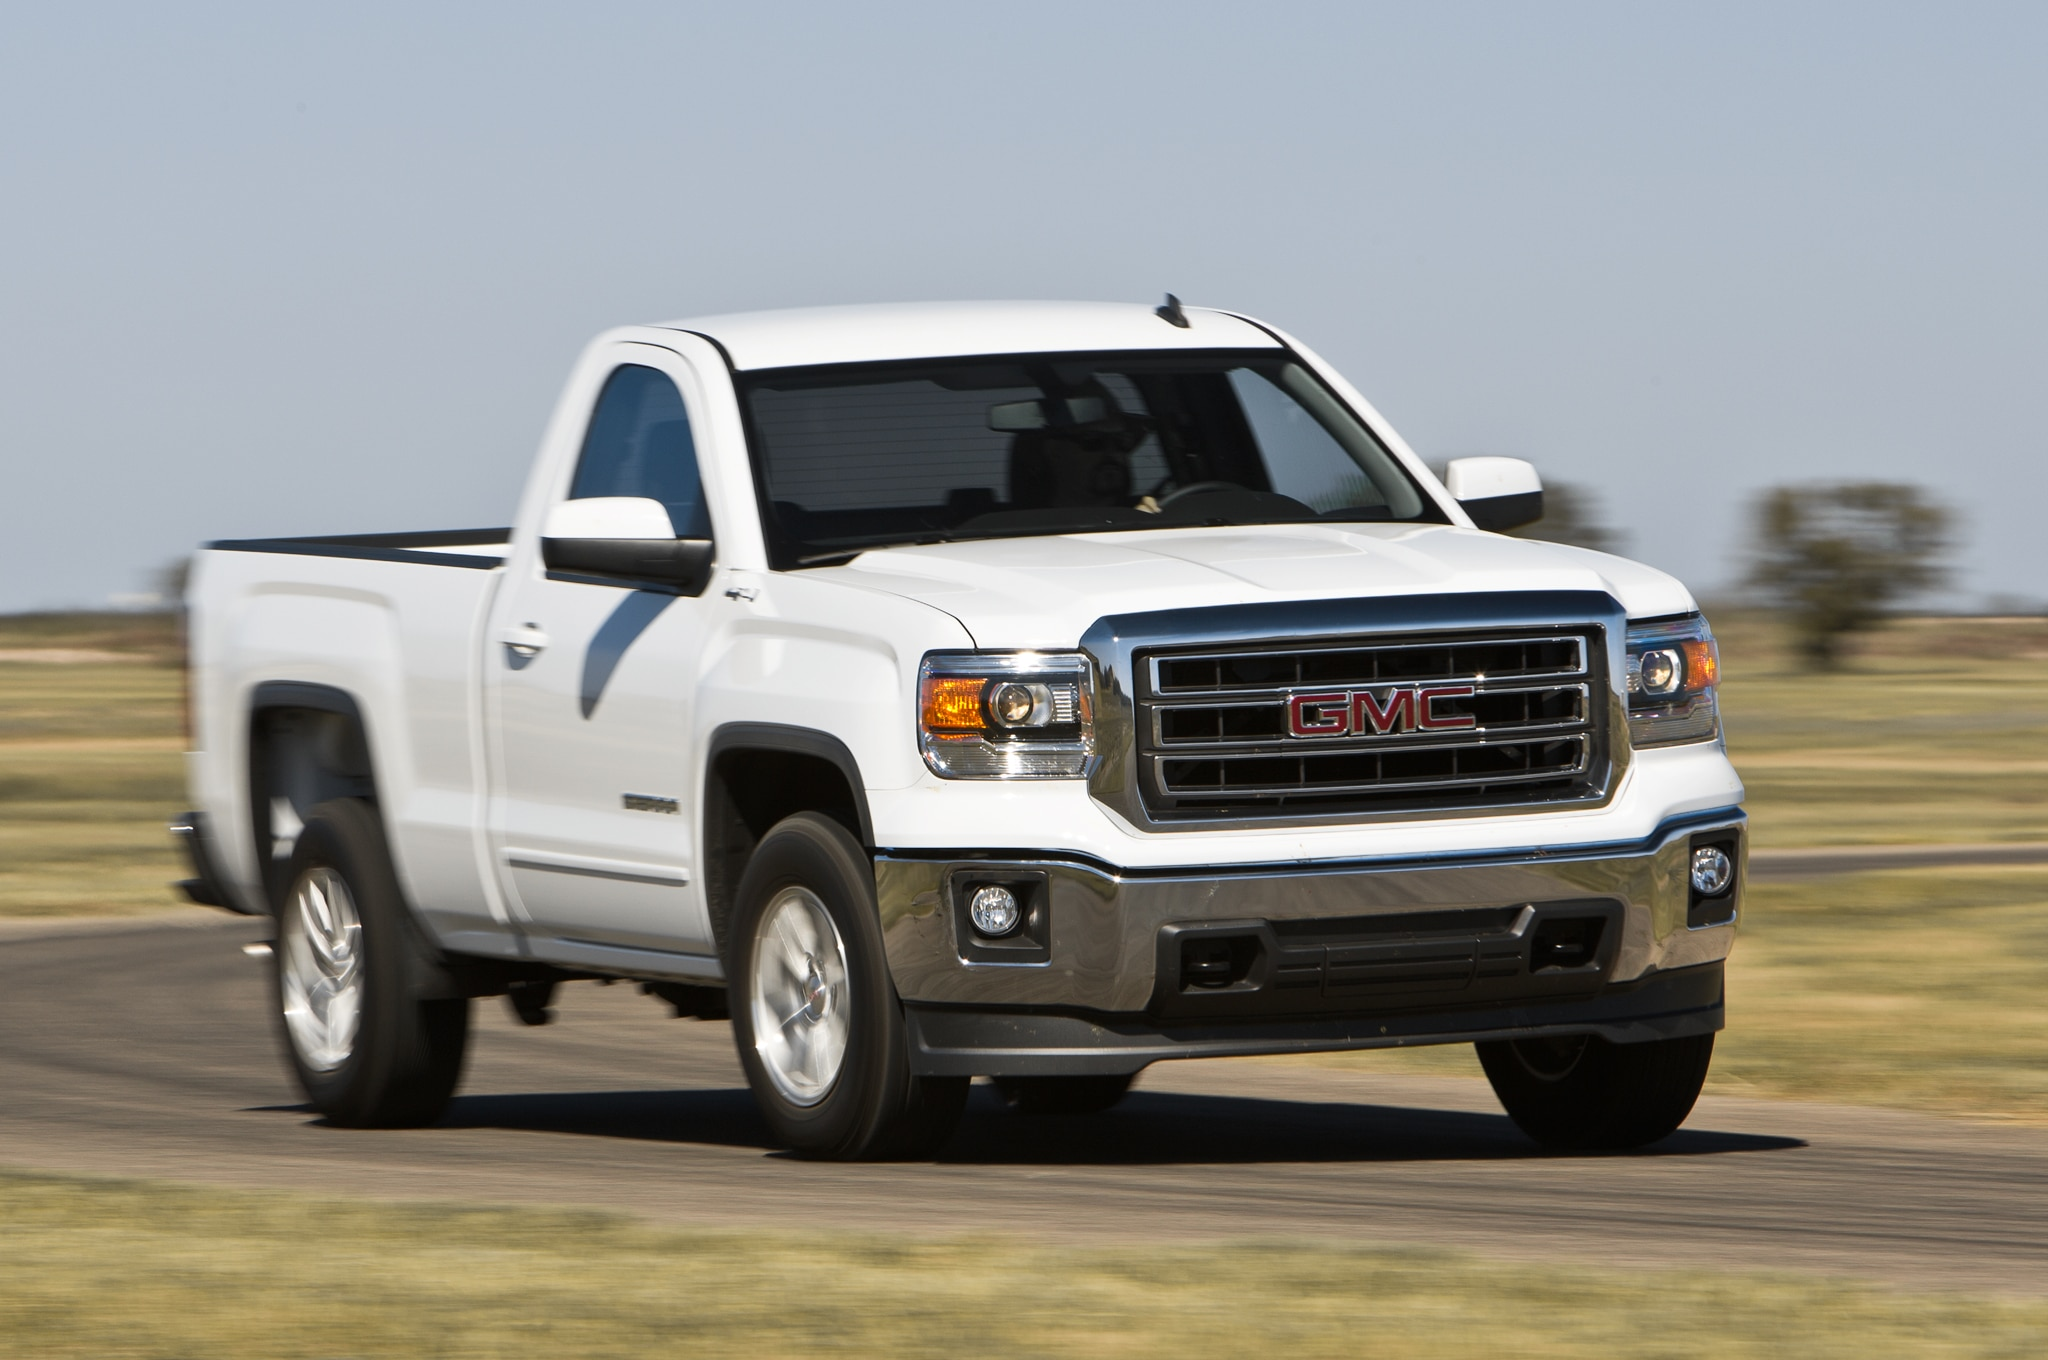 2014 GMC Sierra SLE Regular Cab front view